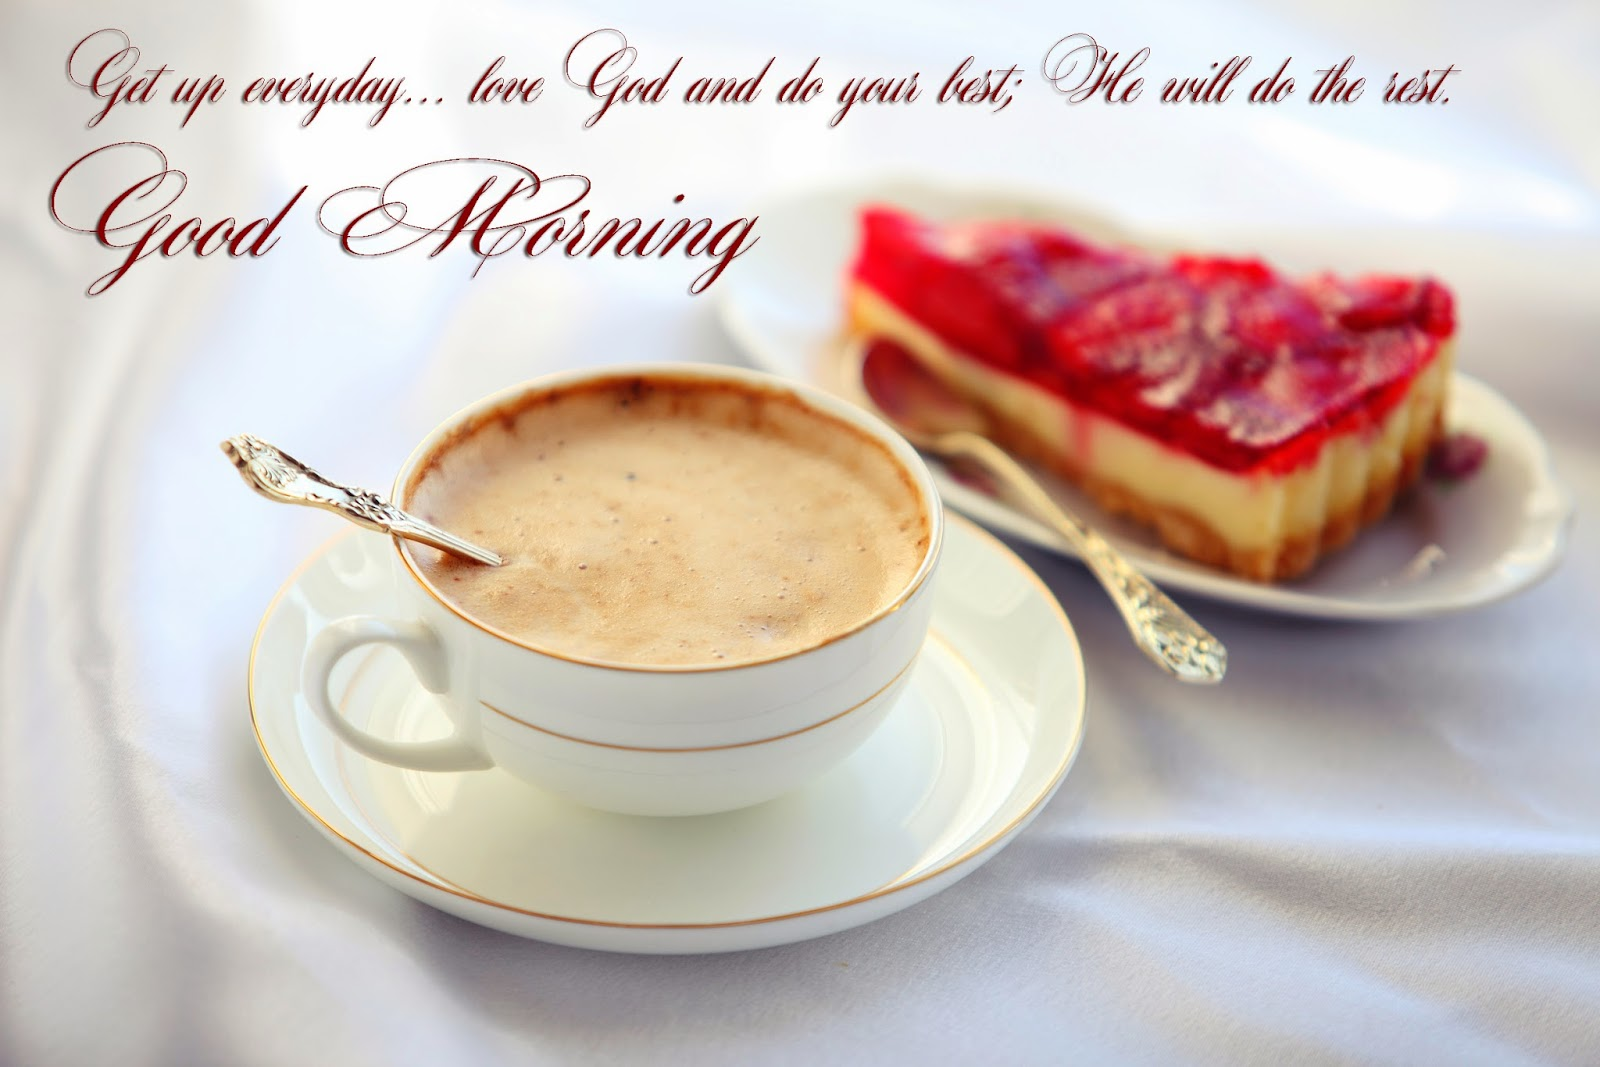 ... HD: Download High Resolution Wallpapers of Beautiful Morning